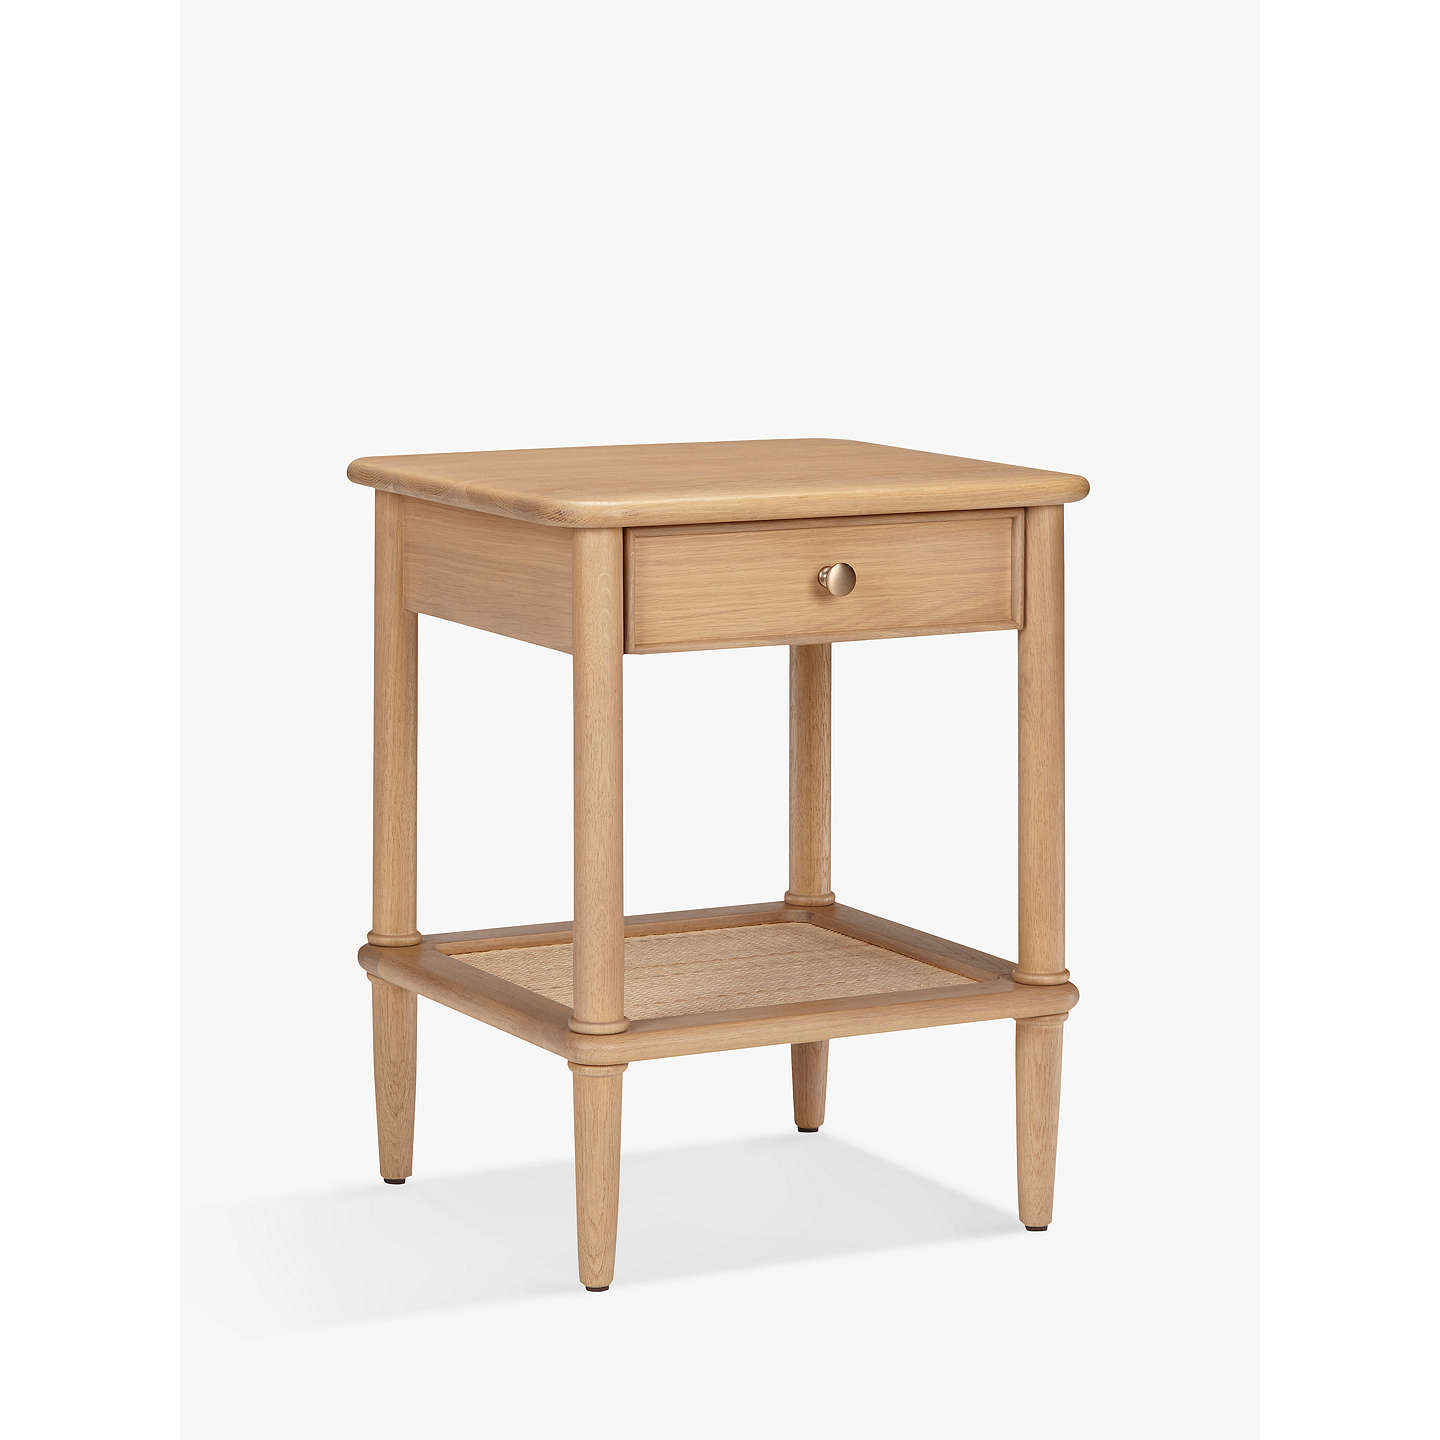 bedside bedsidetable scott productpage cabinet mango table wood industrial desktop carousel